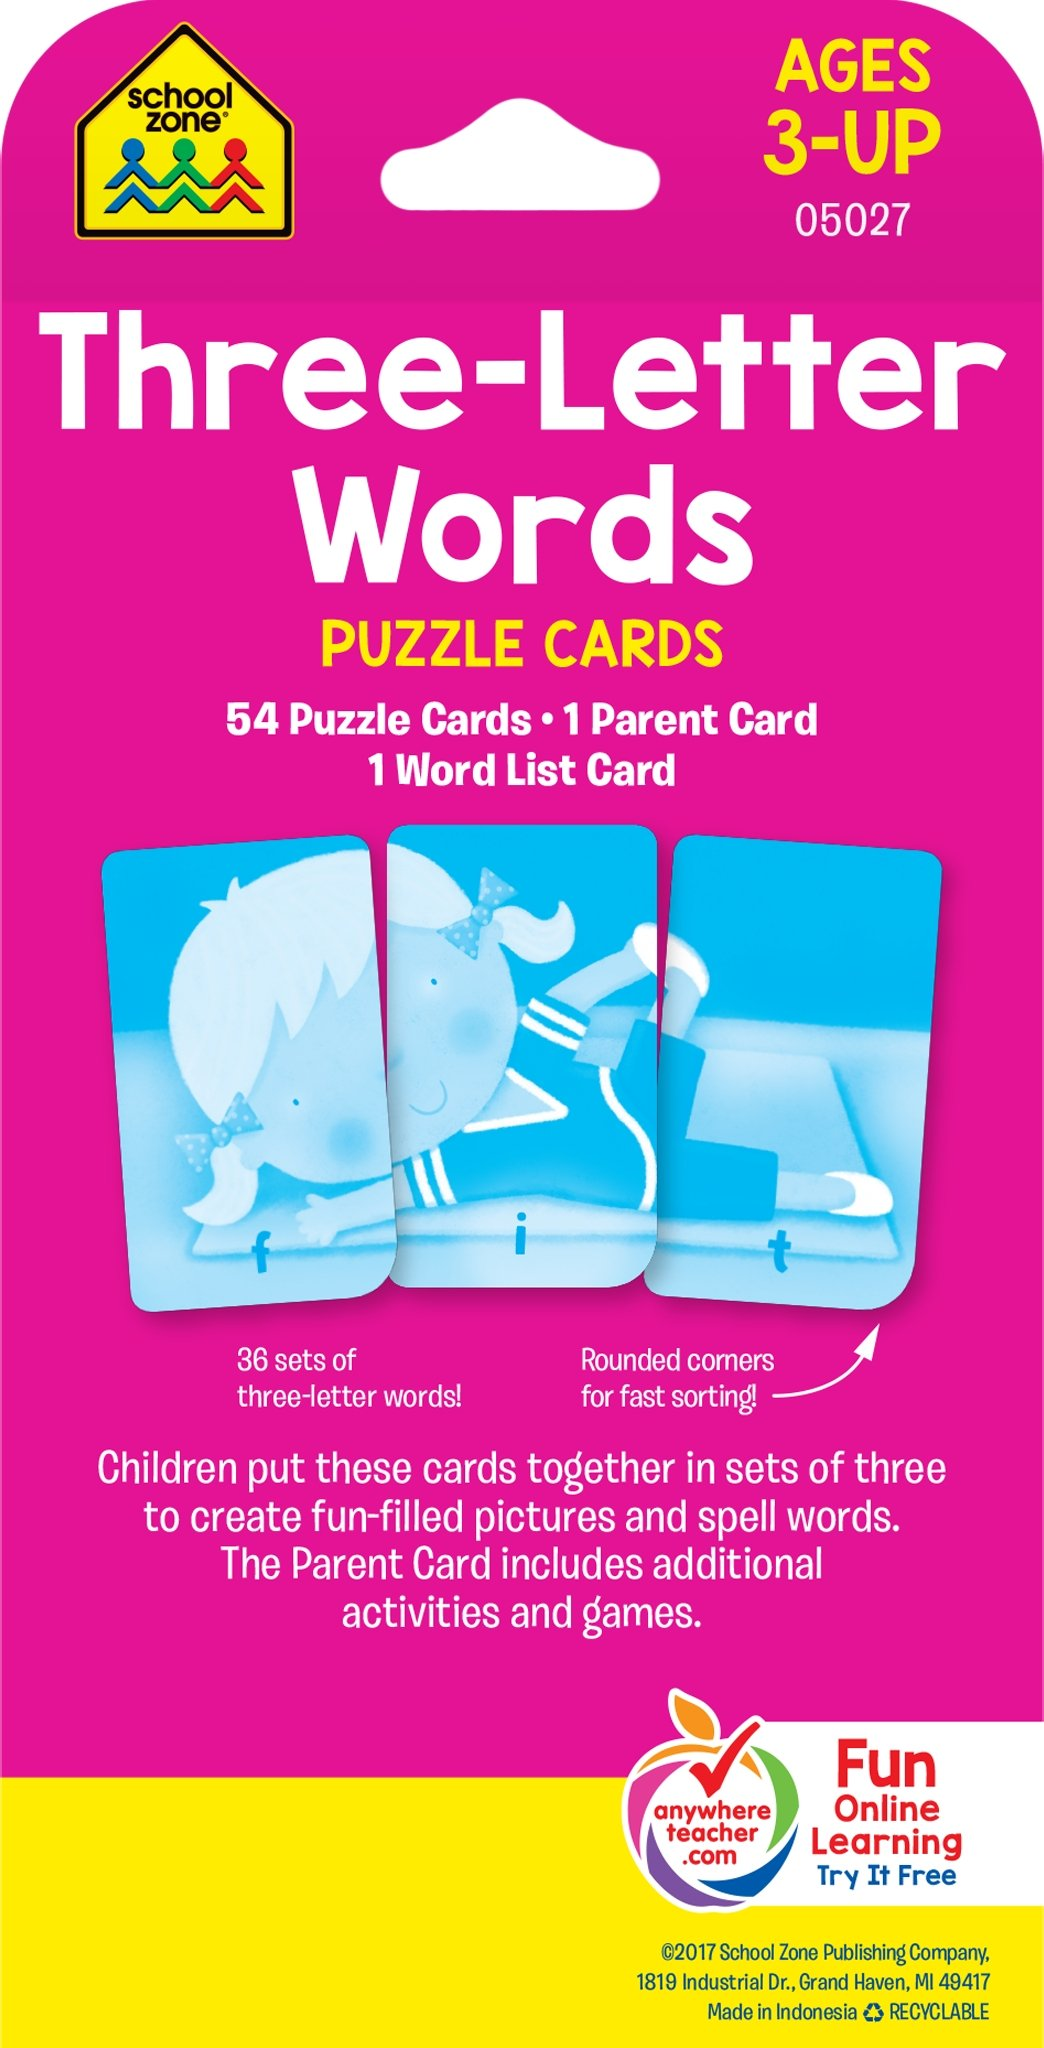 Buy Puzzle Cards - Three-Letter Words Book Online at Low Prices in ...